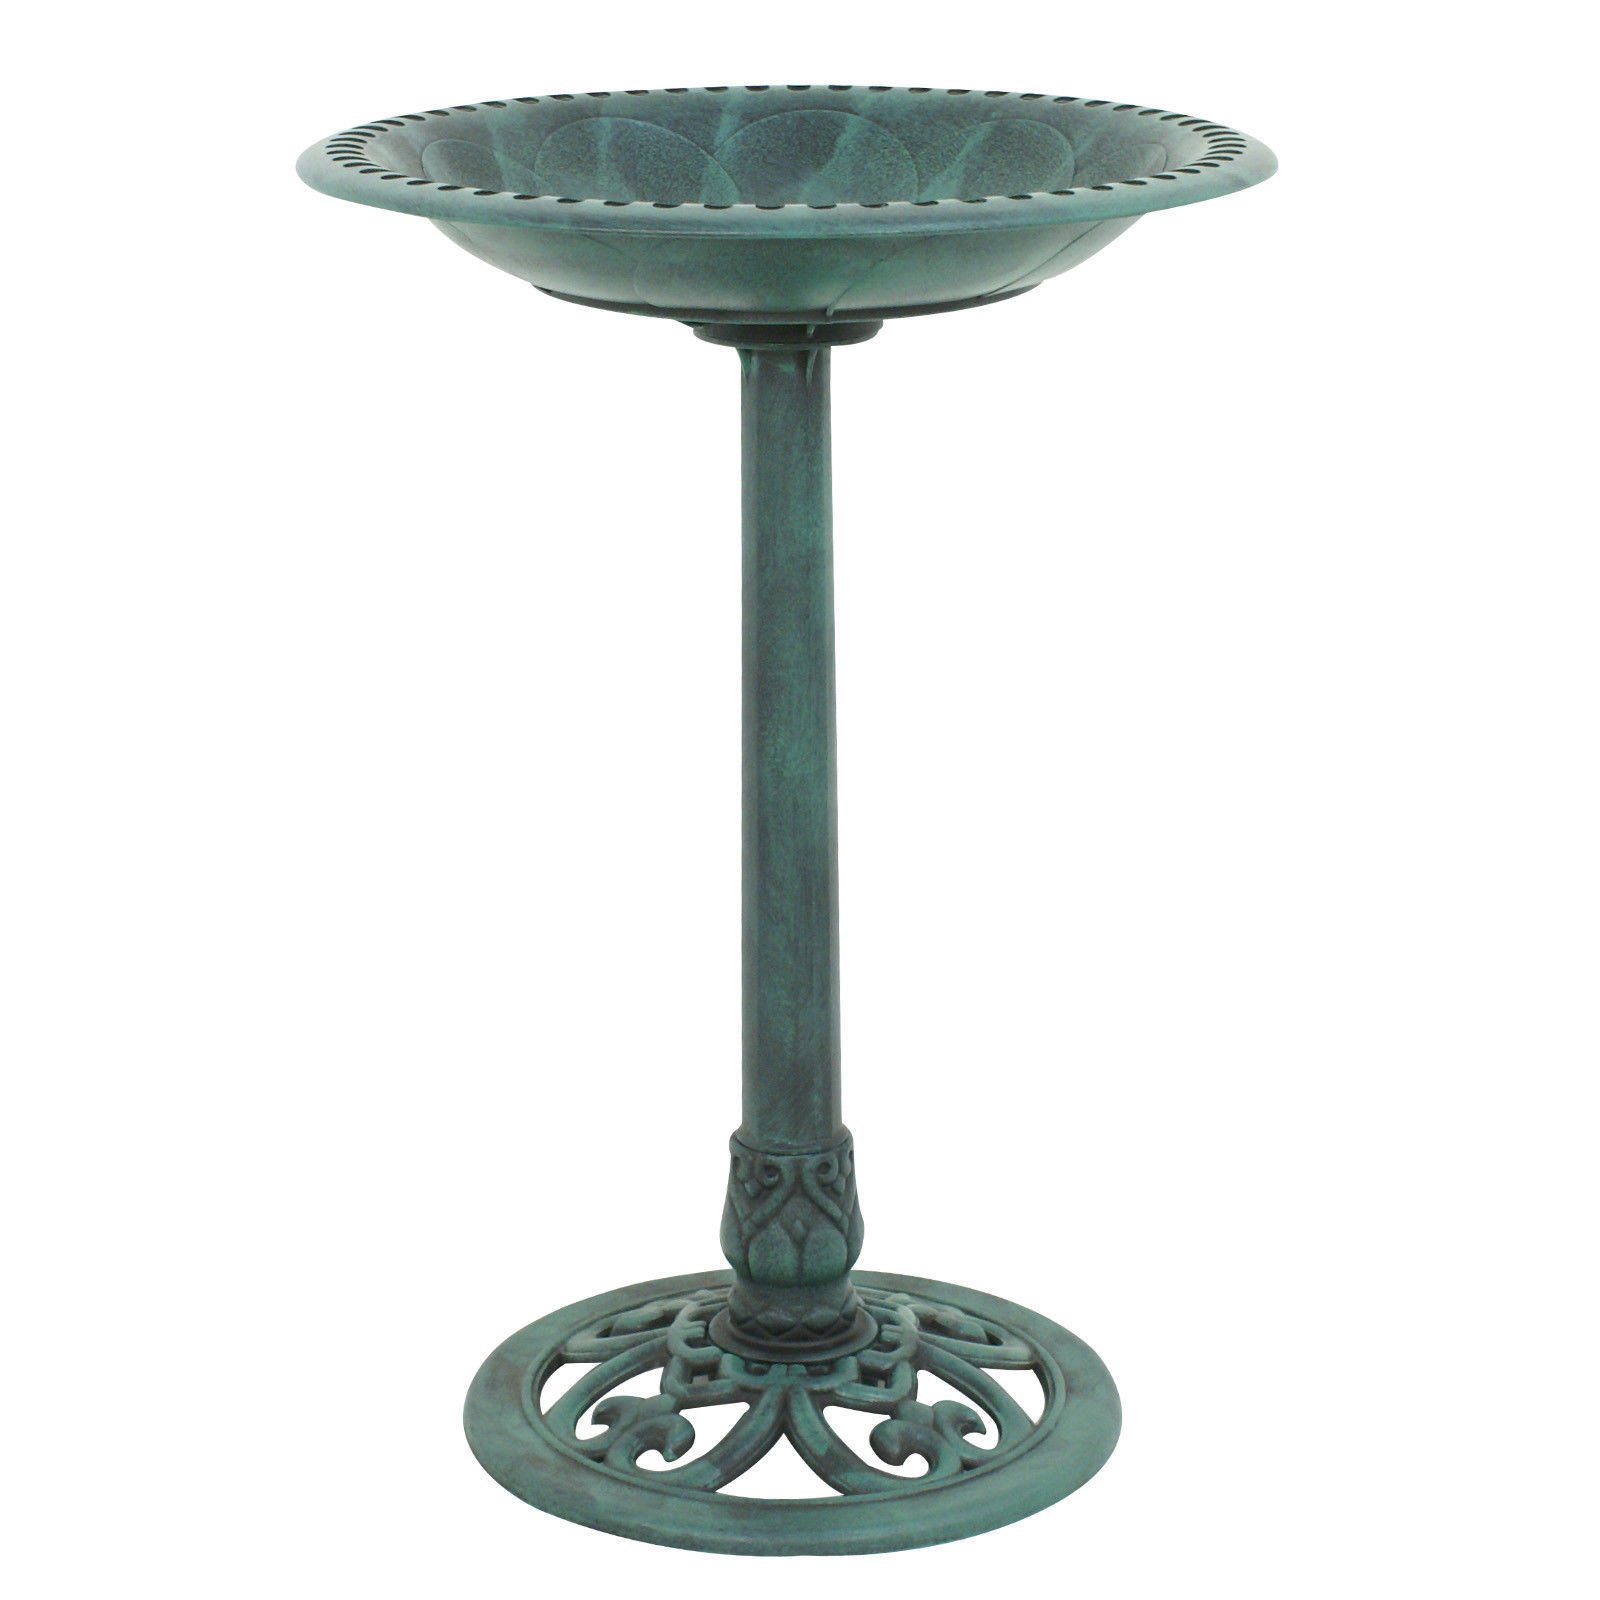 allgoodsdelight365 Green Pedestal Bird Bath Feeder Freestanding Outdoor Garden Yard Patio Decor